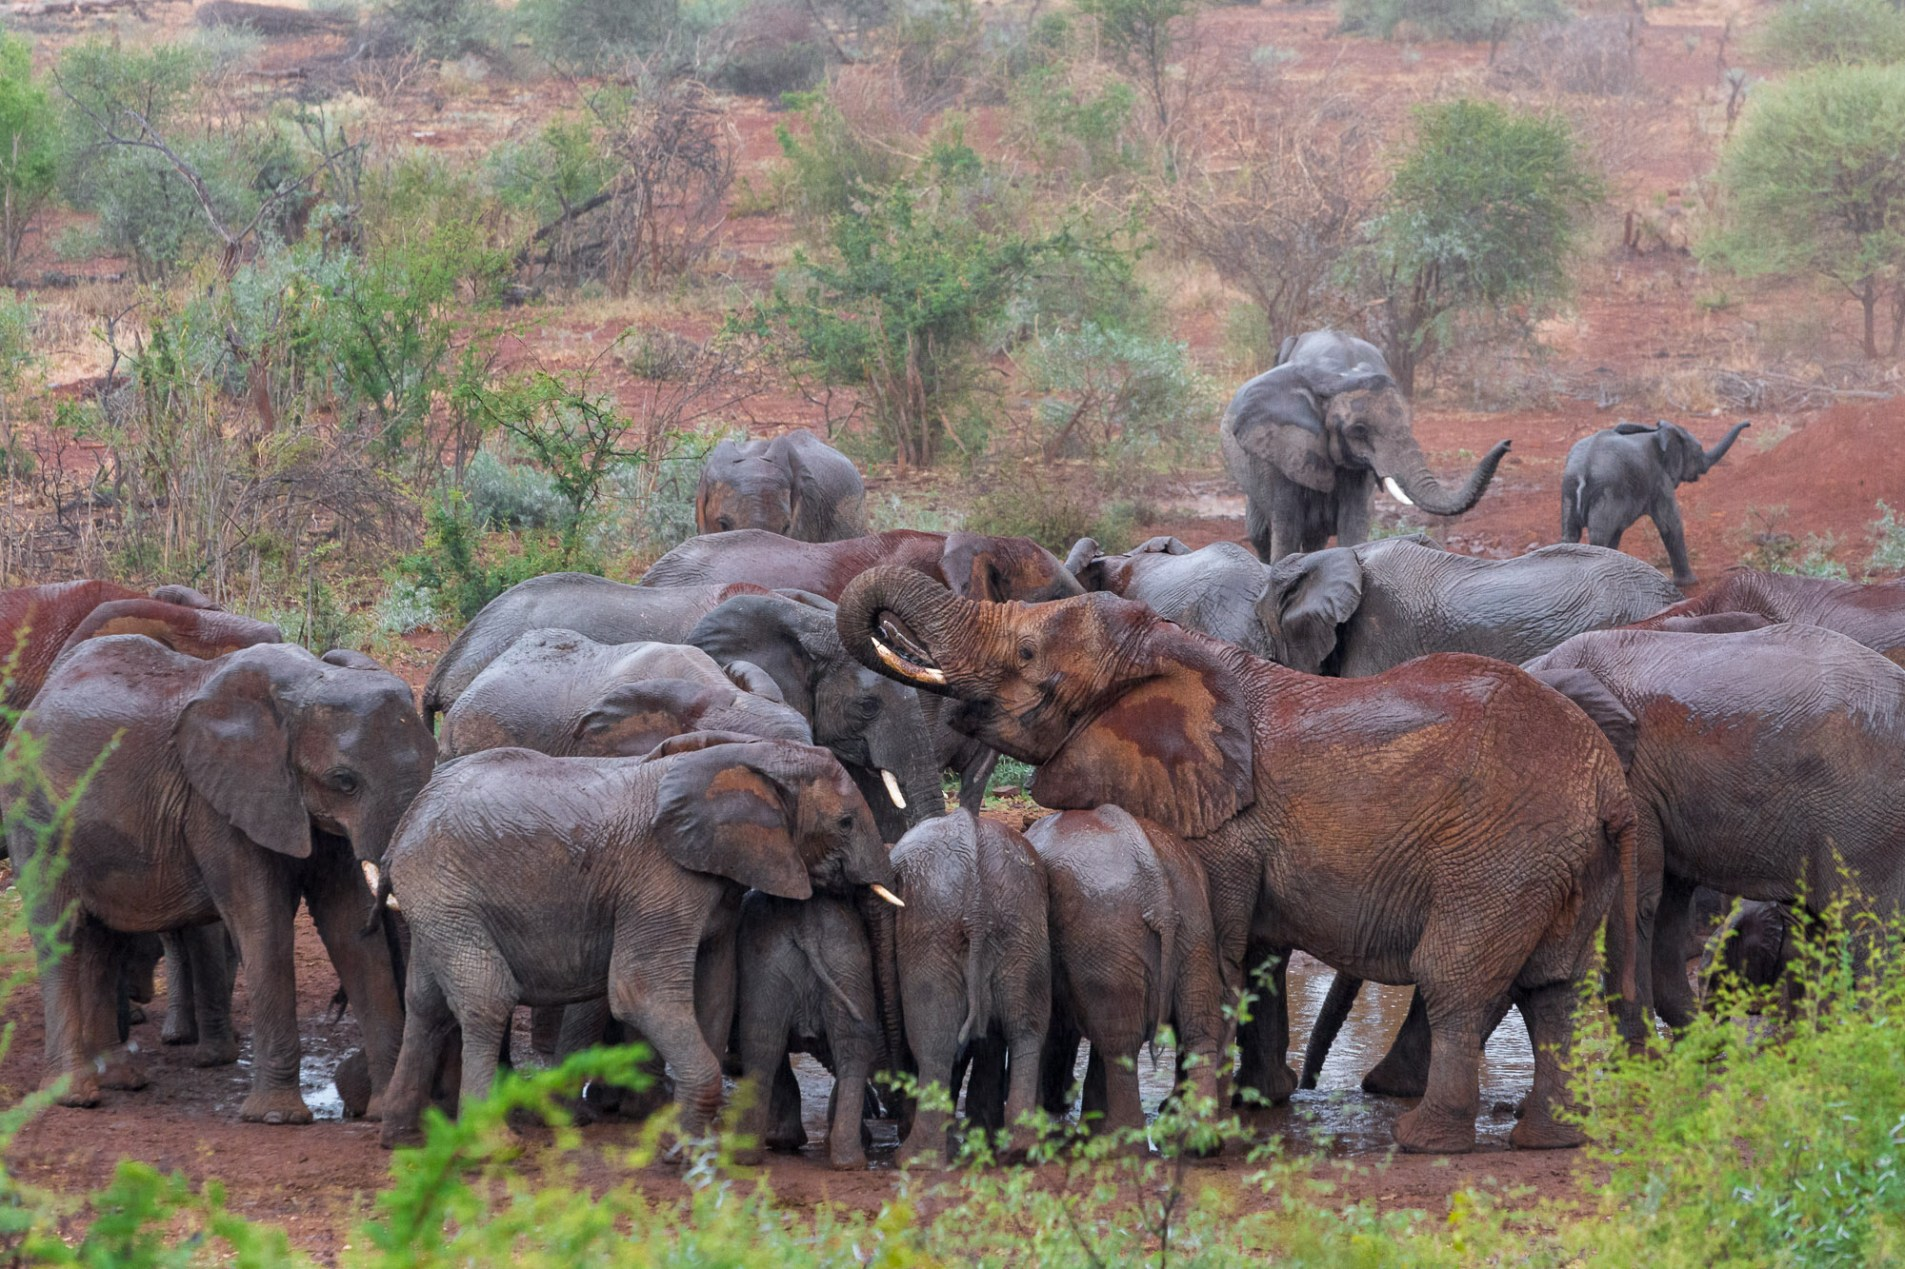 Elephants around the watering hole at Molori Safari Lodge in South Africa